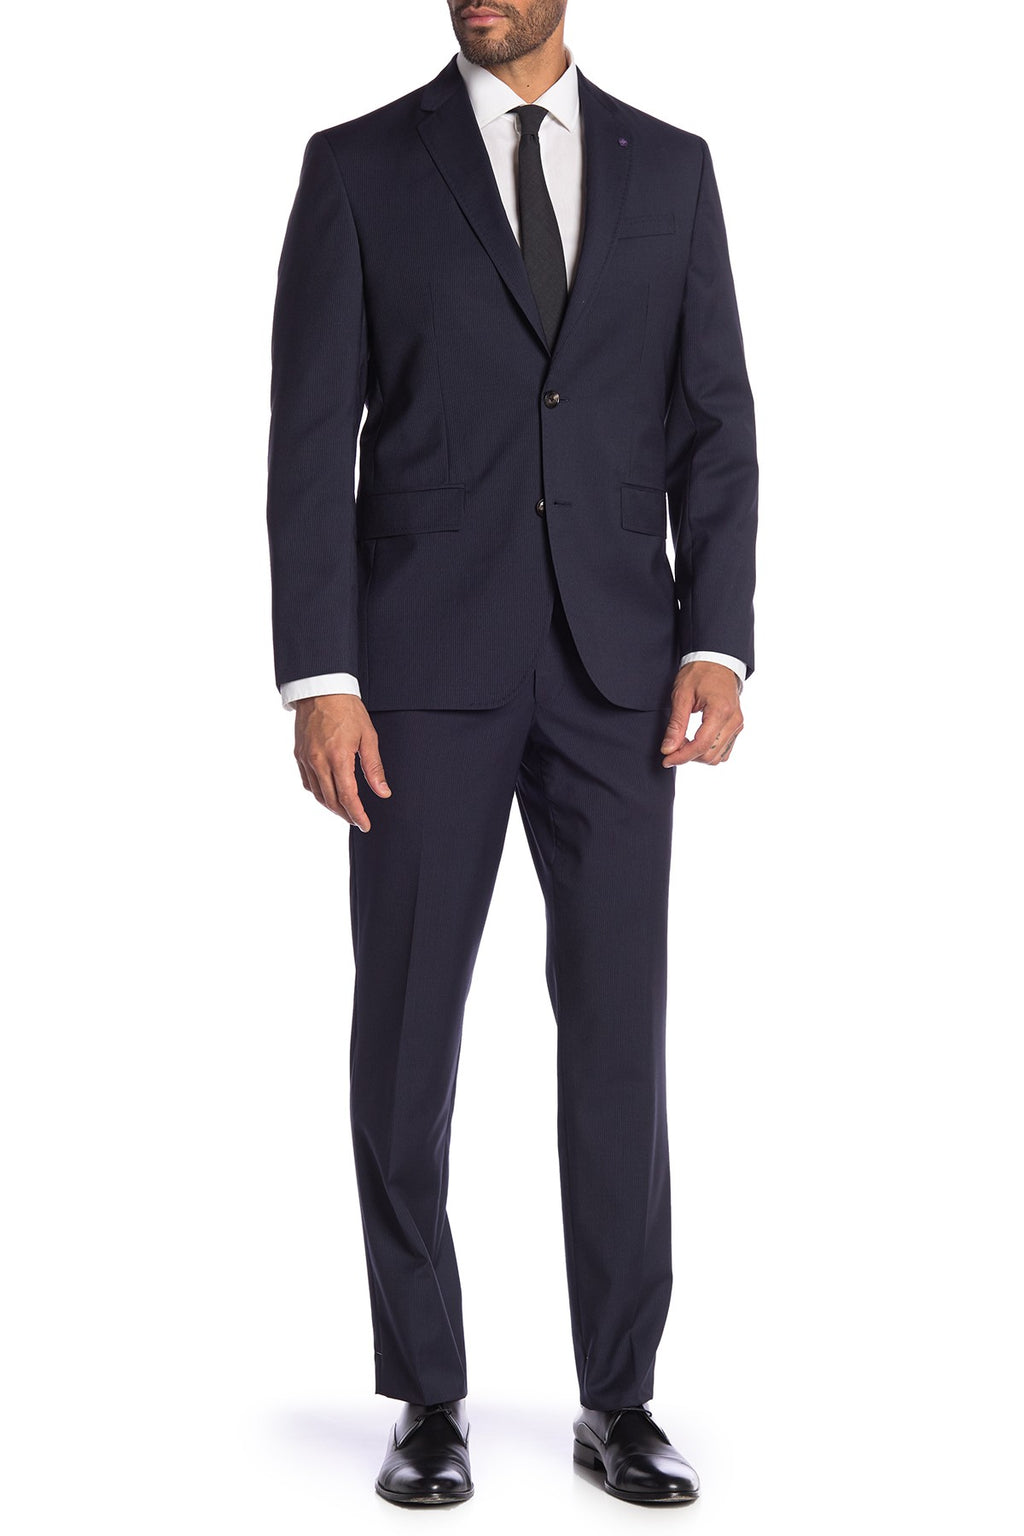 """JAY"" Blue Pinstripe • Slim Fit Suit •"